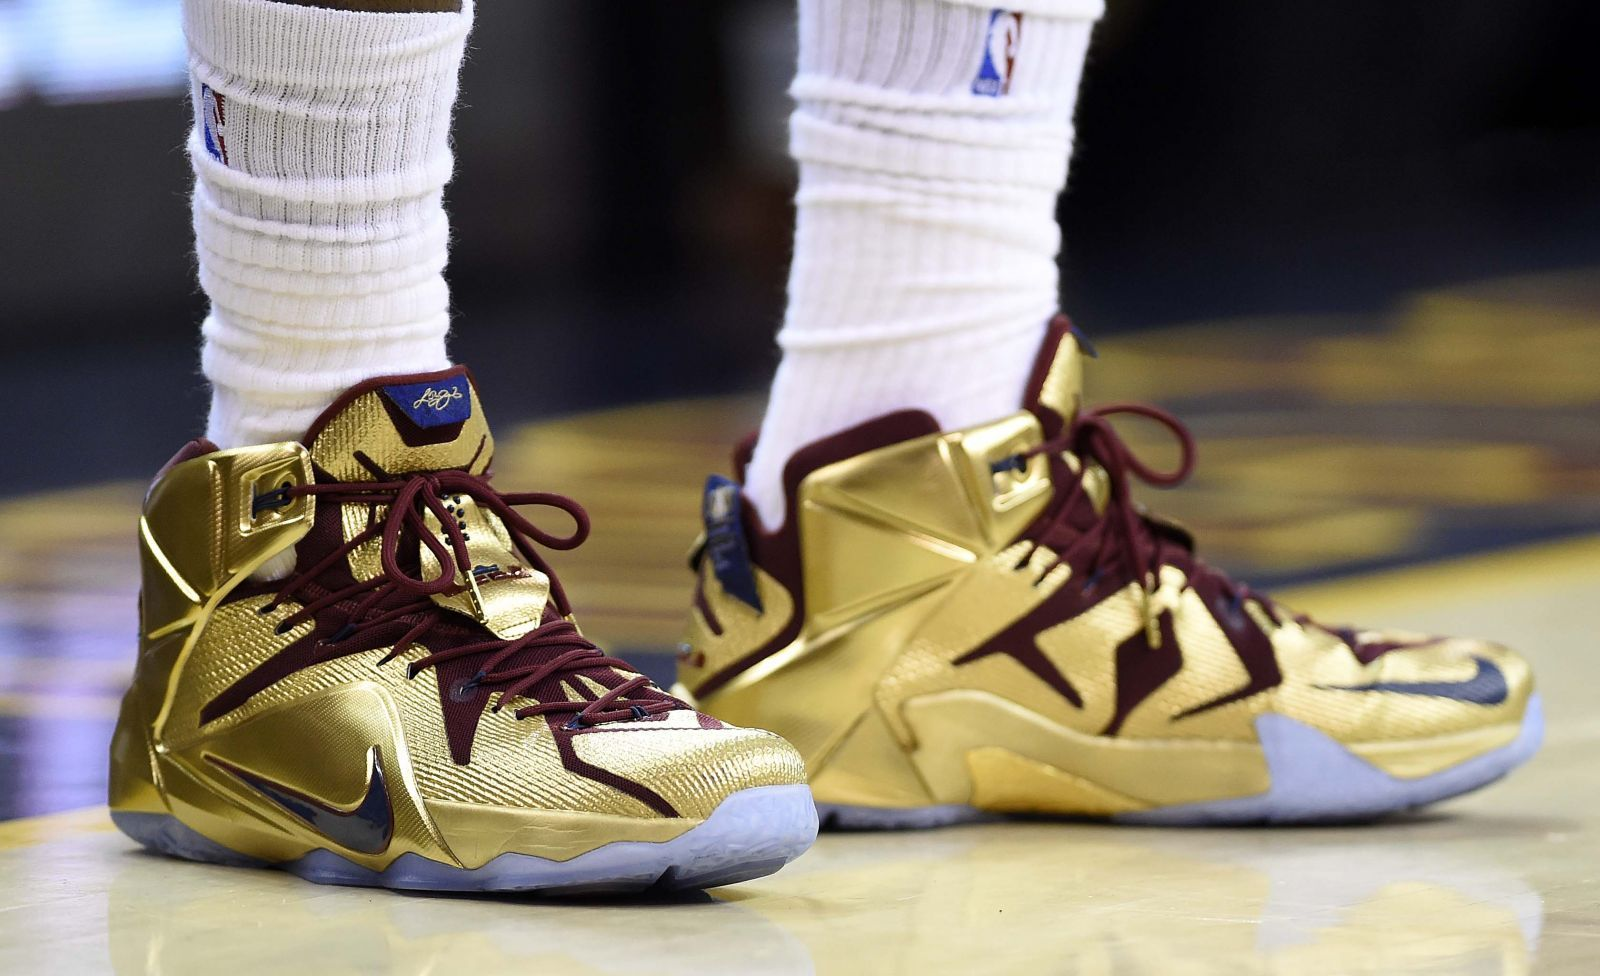 dcccef32b02 SoleWatch  LeBron James Going for Gold in Game 6 Sneakers